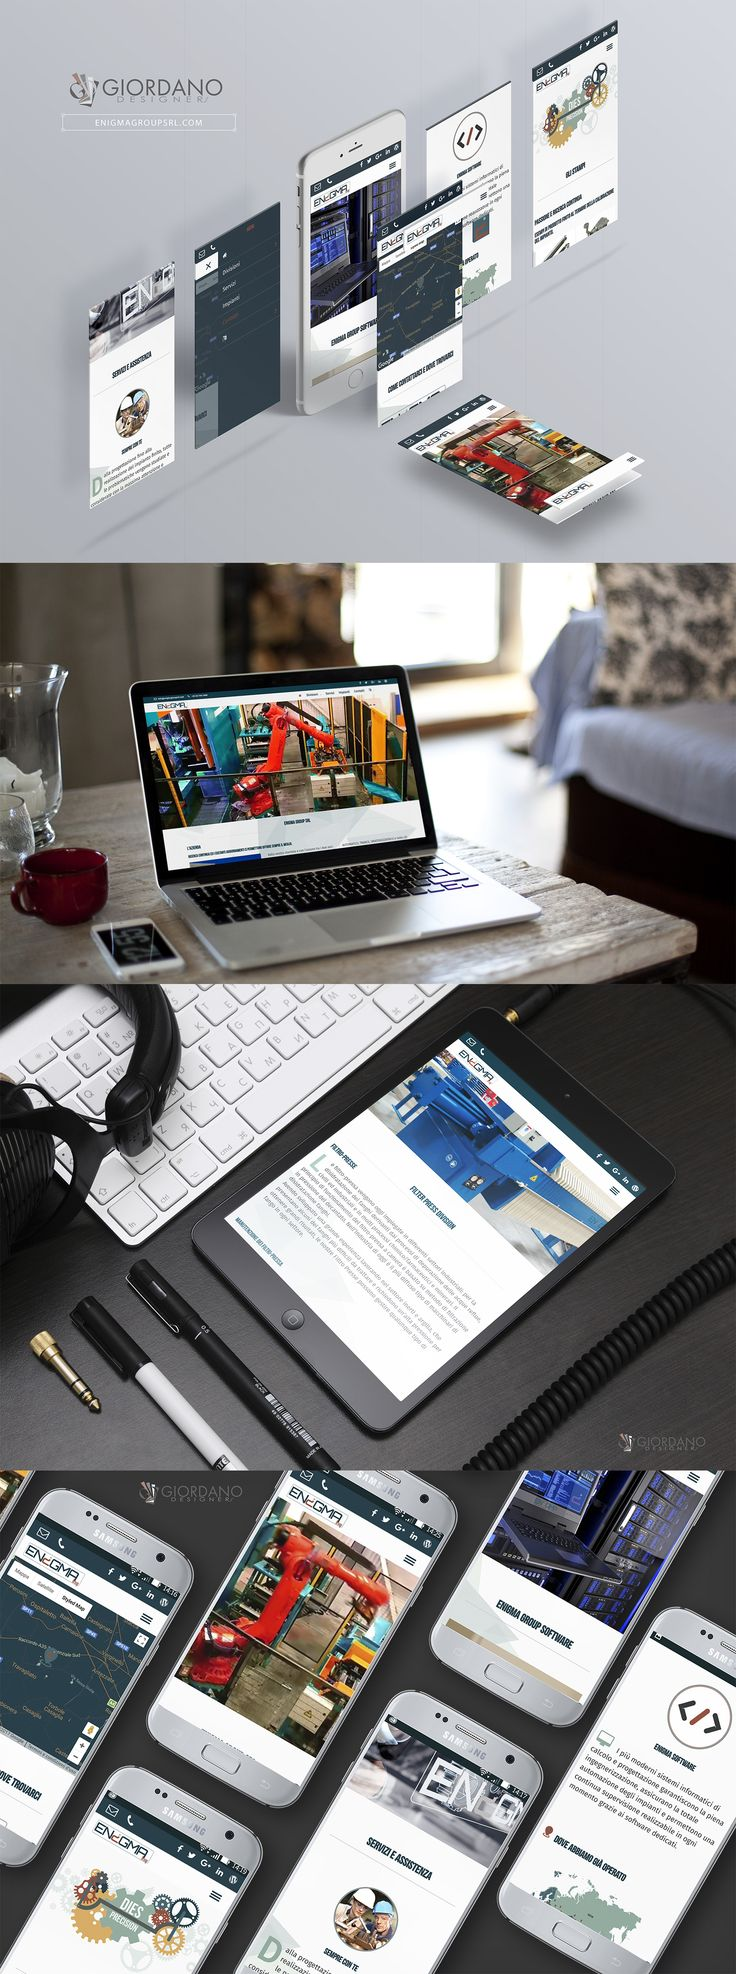 Ready new website for Enigma Group srl - Brescia IT ... Full responsive, accessible from all devices such as smartphones and tablets. Available in Italian / English / Russian.  #WebDesign #WebTypography #MobileFriendly #UserExperience #WebDeveloper #ResponsiveDesign #SiteOfTheDay #CorporateIdentity #UI #FilterPresses #IndustrialInstallations #DiesCastingMichines